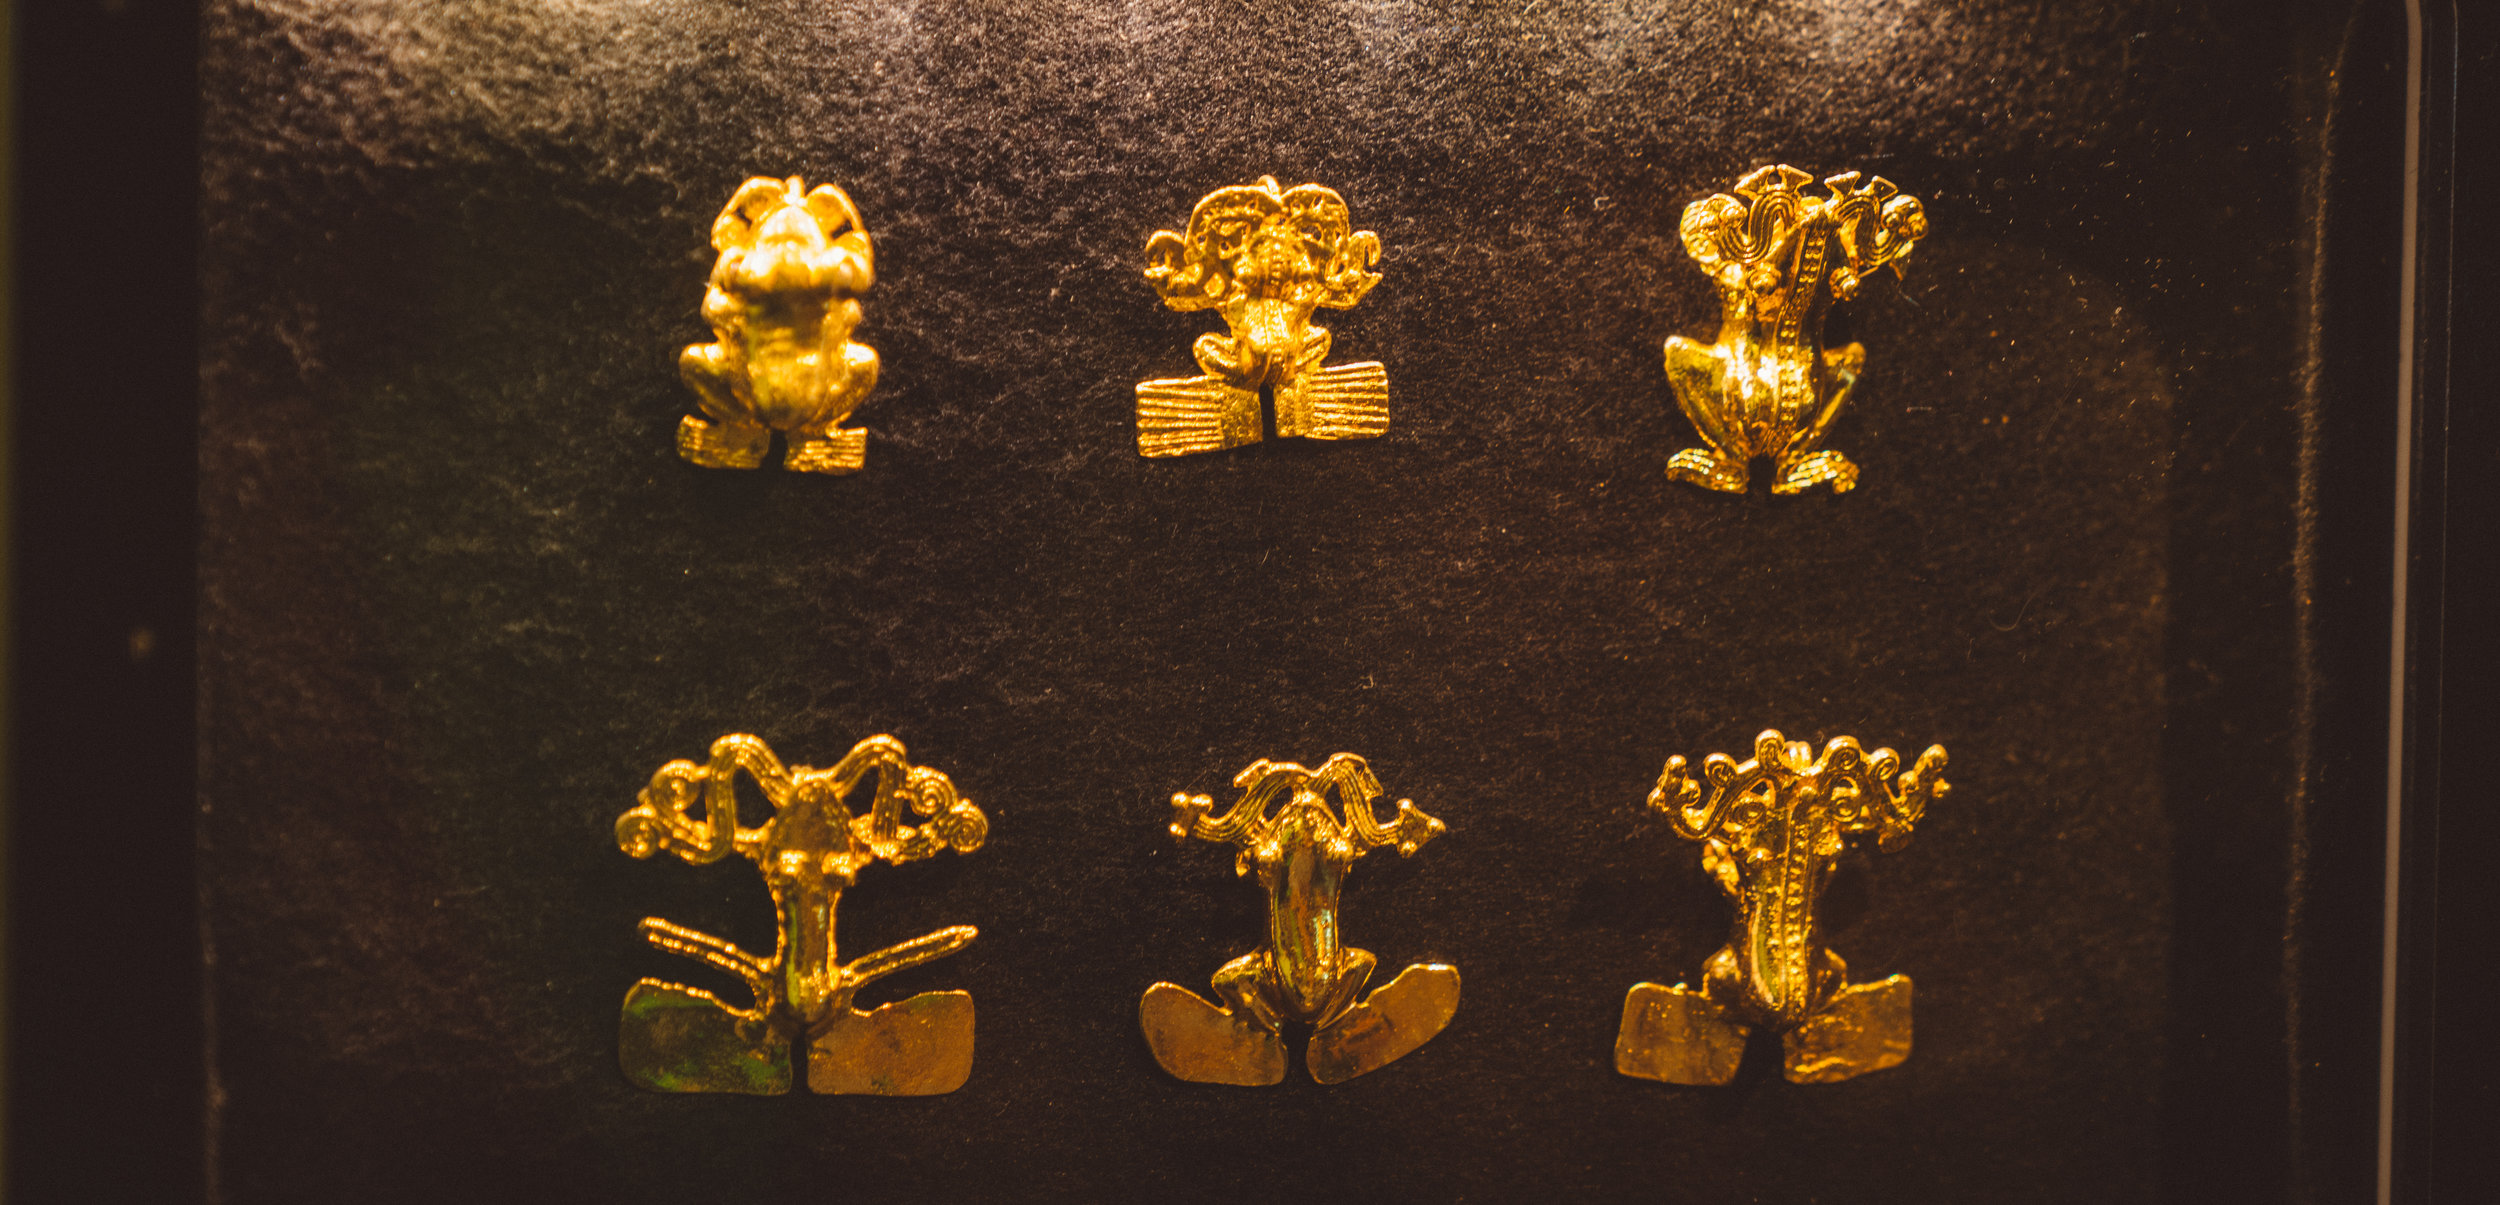 Some gold frog artifacts.